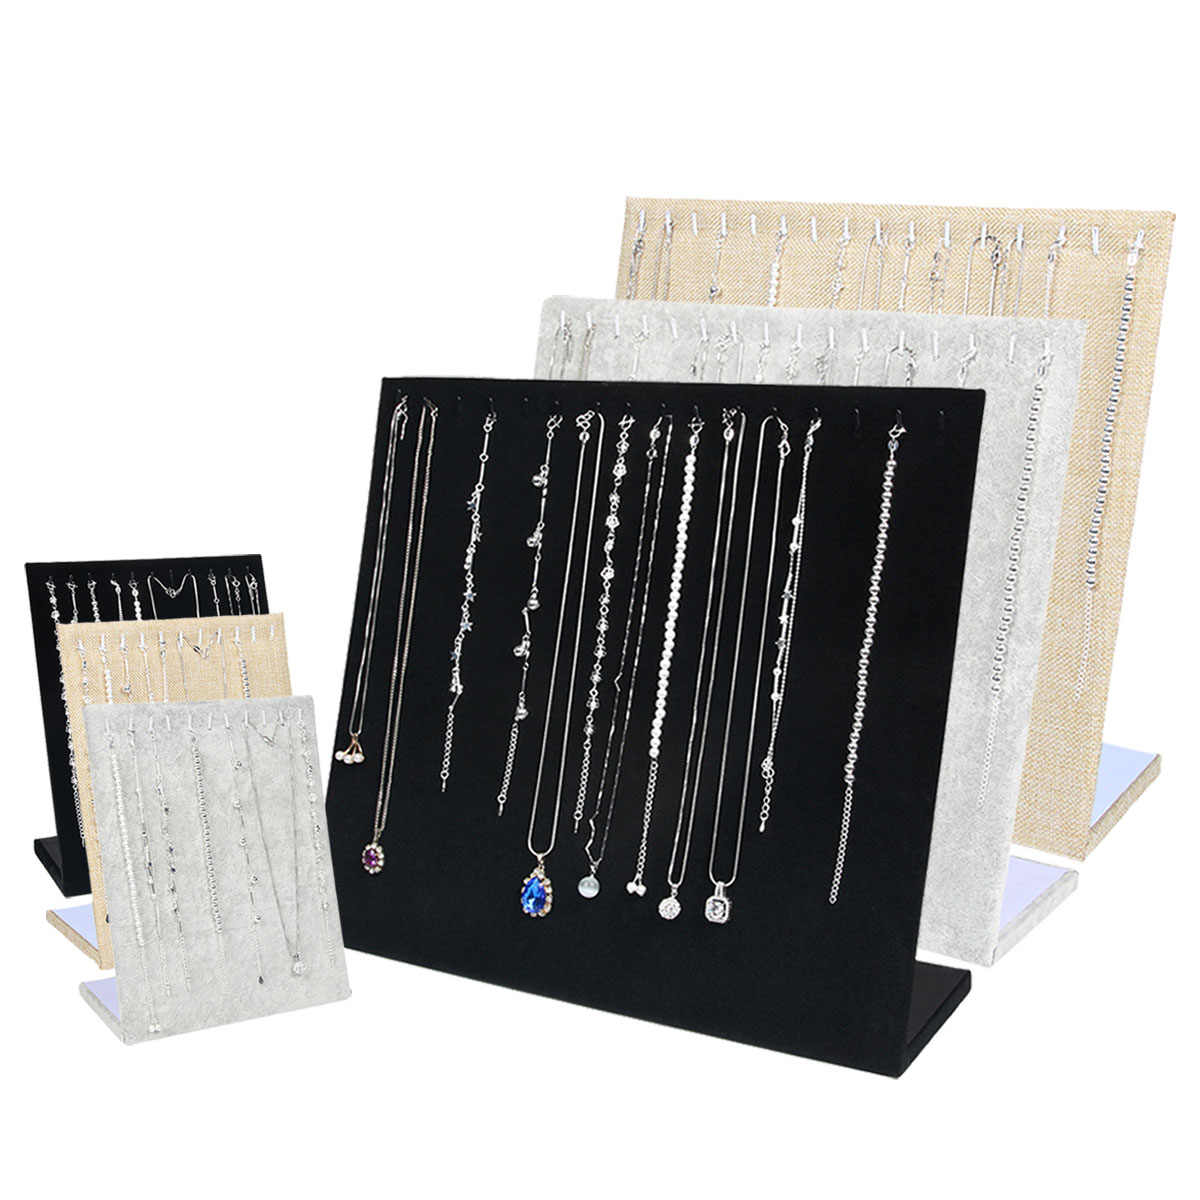 Black Velvet Necklace Bracelet Chain Jewelry Display Holder Stand Fabrics Women Jewelry Organizer Holder Storage Case 3 Colors